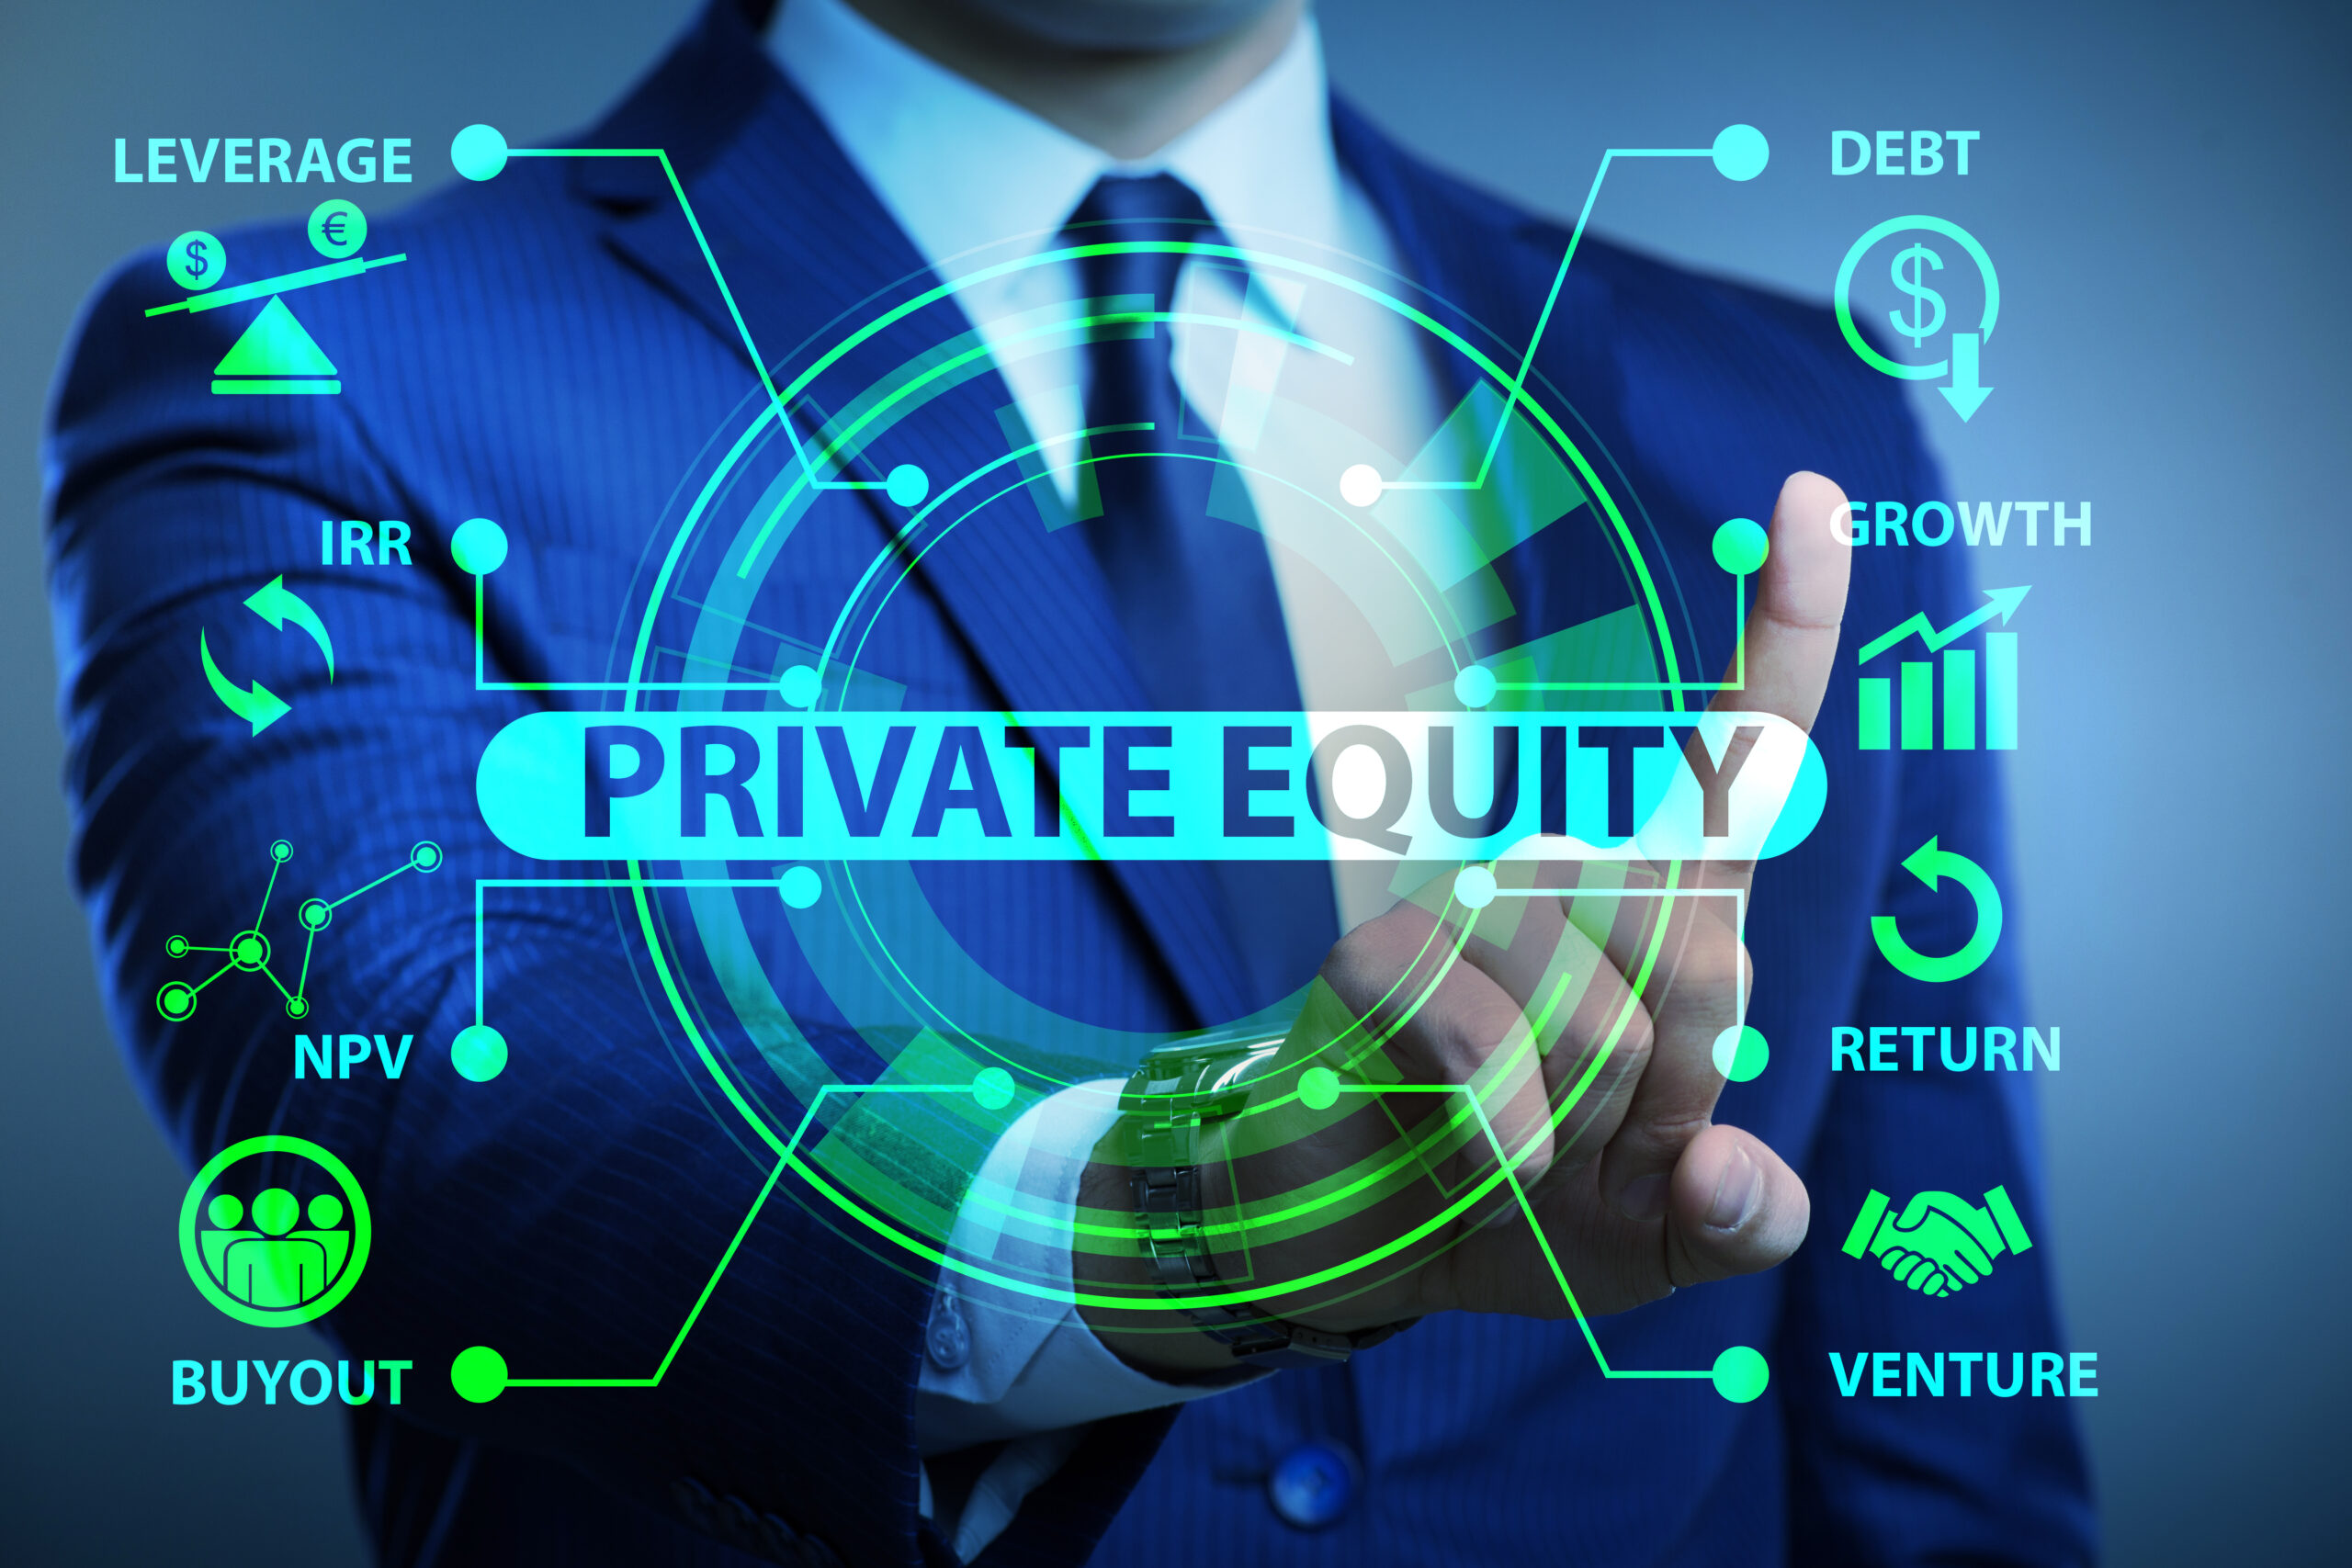 Insurers Prefer Private Equity Investments over Hedge Funds: Survey